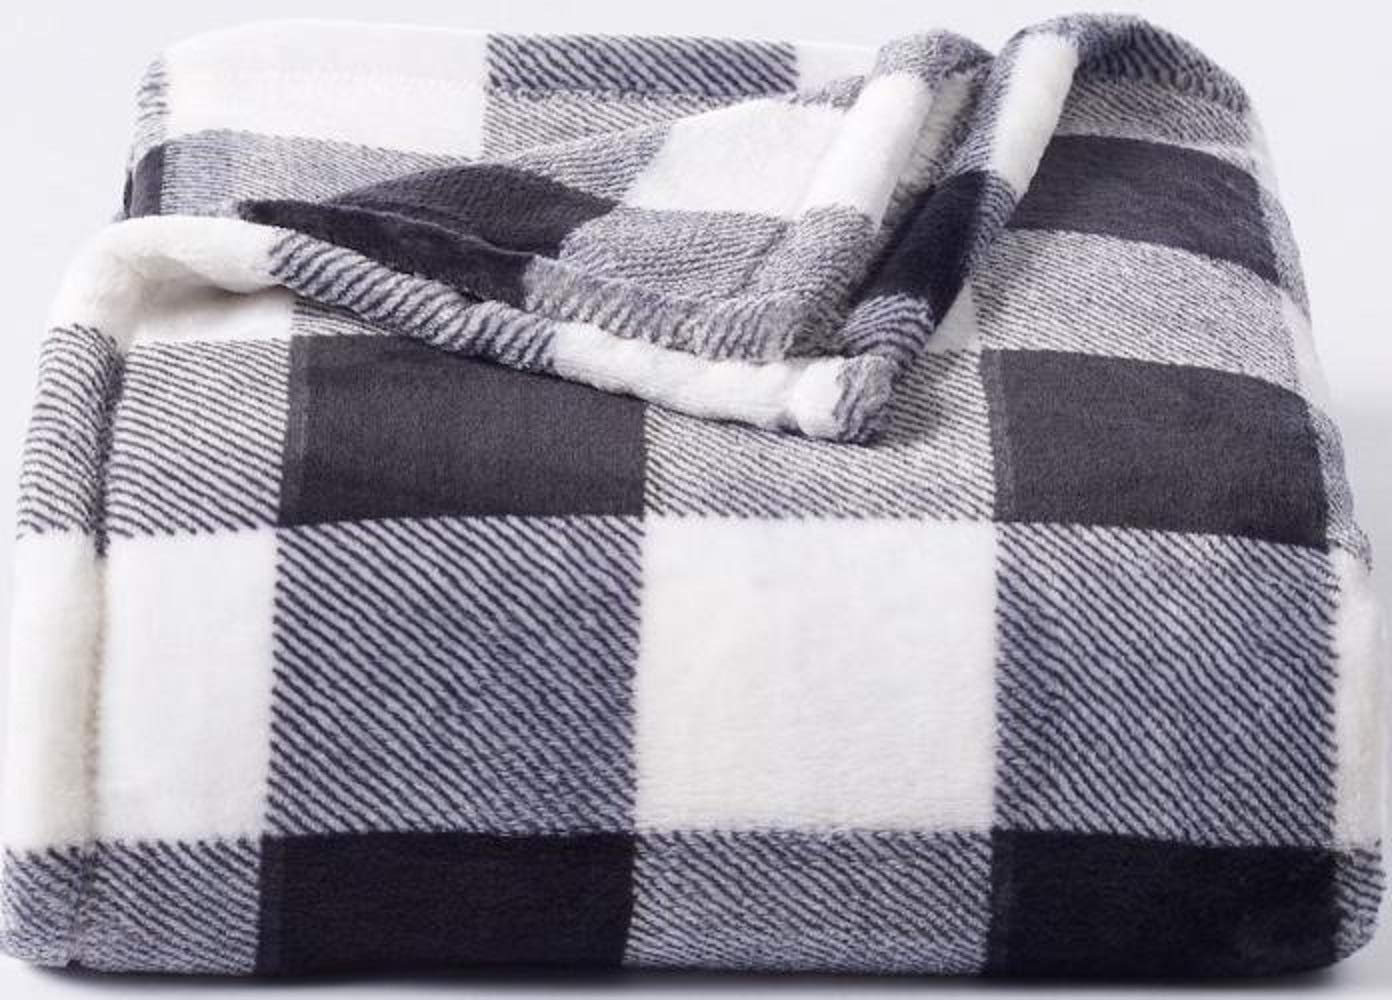 "The Big One Supersoft Plush Throw Black White Buffalo Check - 60"" x 72"""